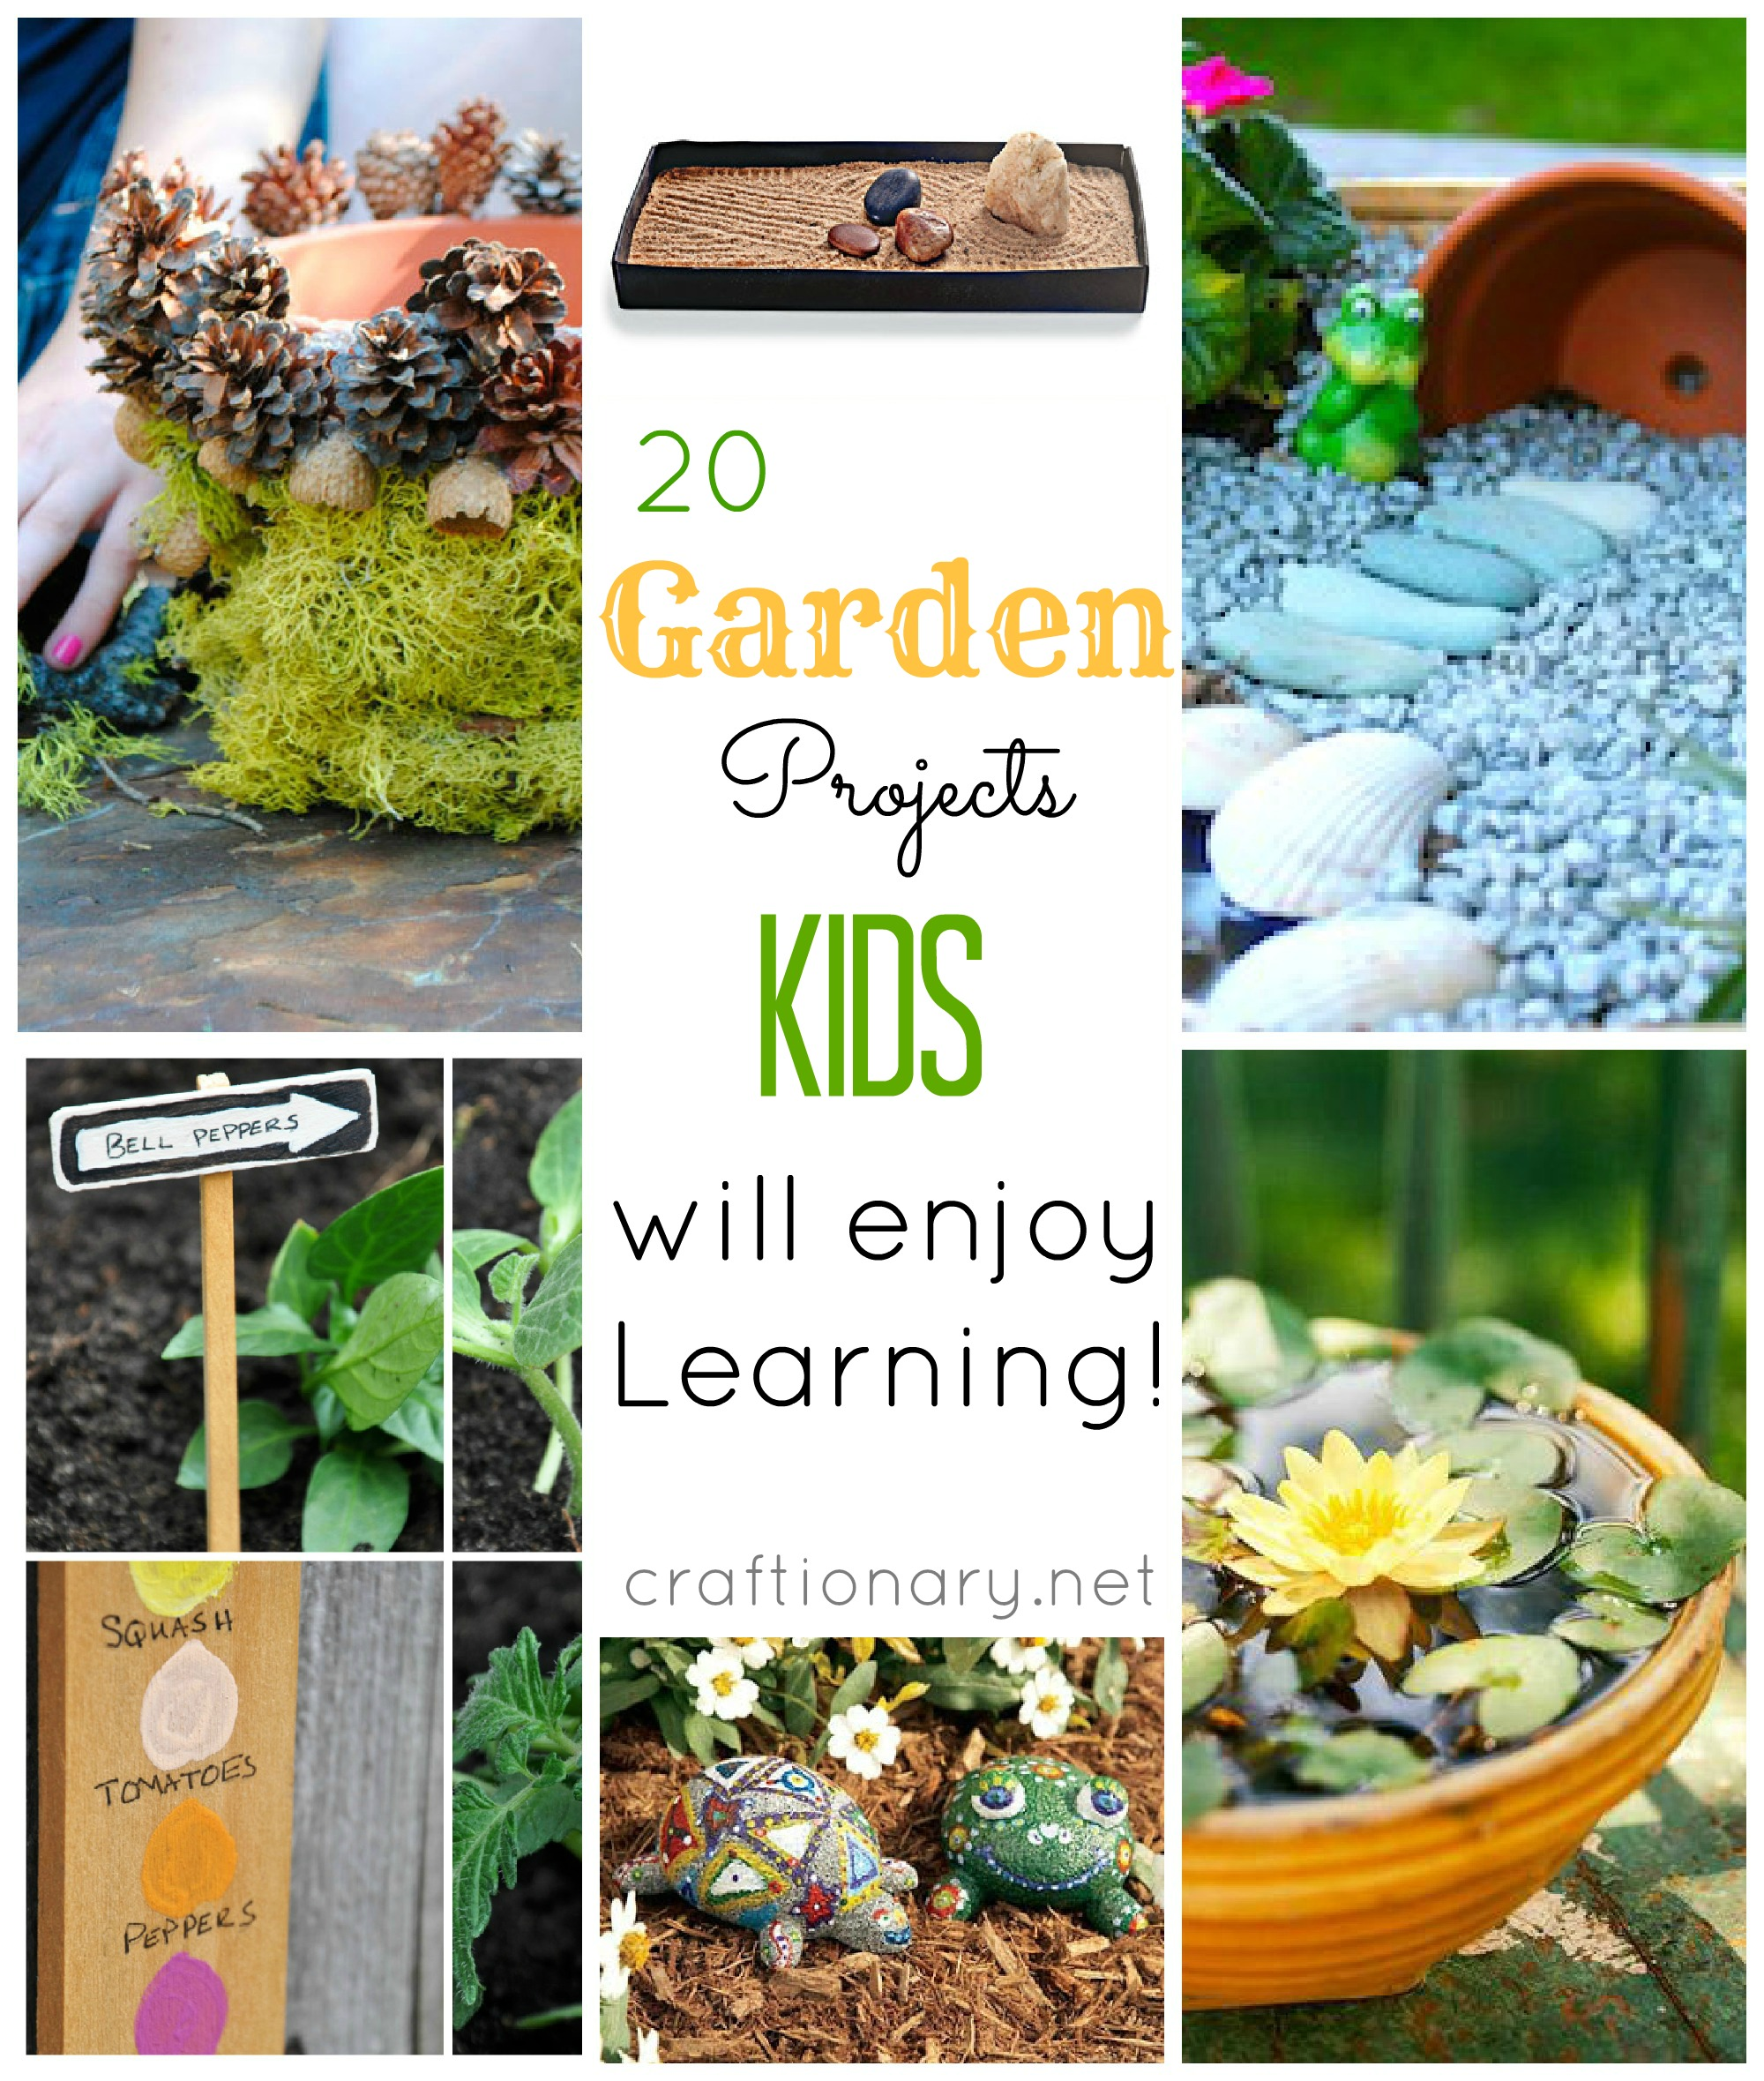 gardening with kids activities projects and ideas - Garden Ideas For Toddlers